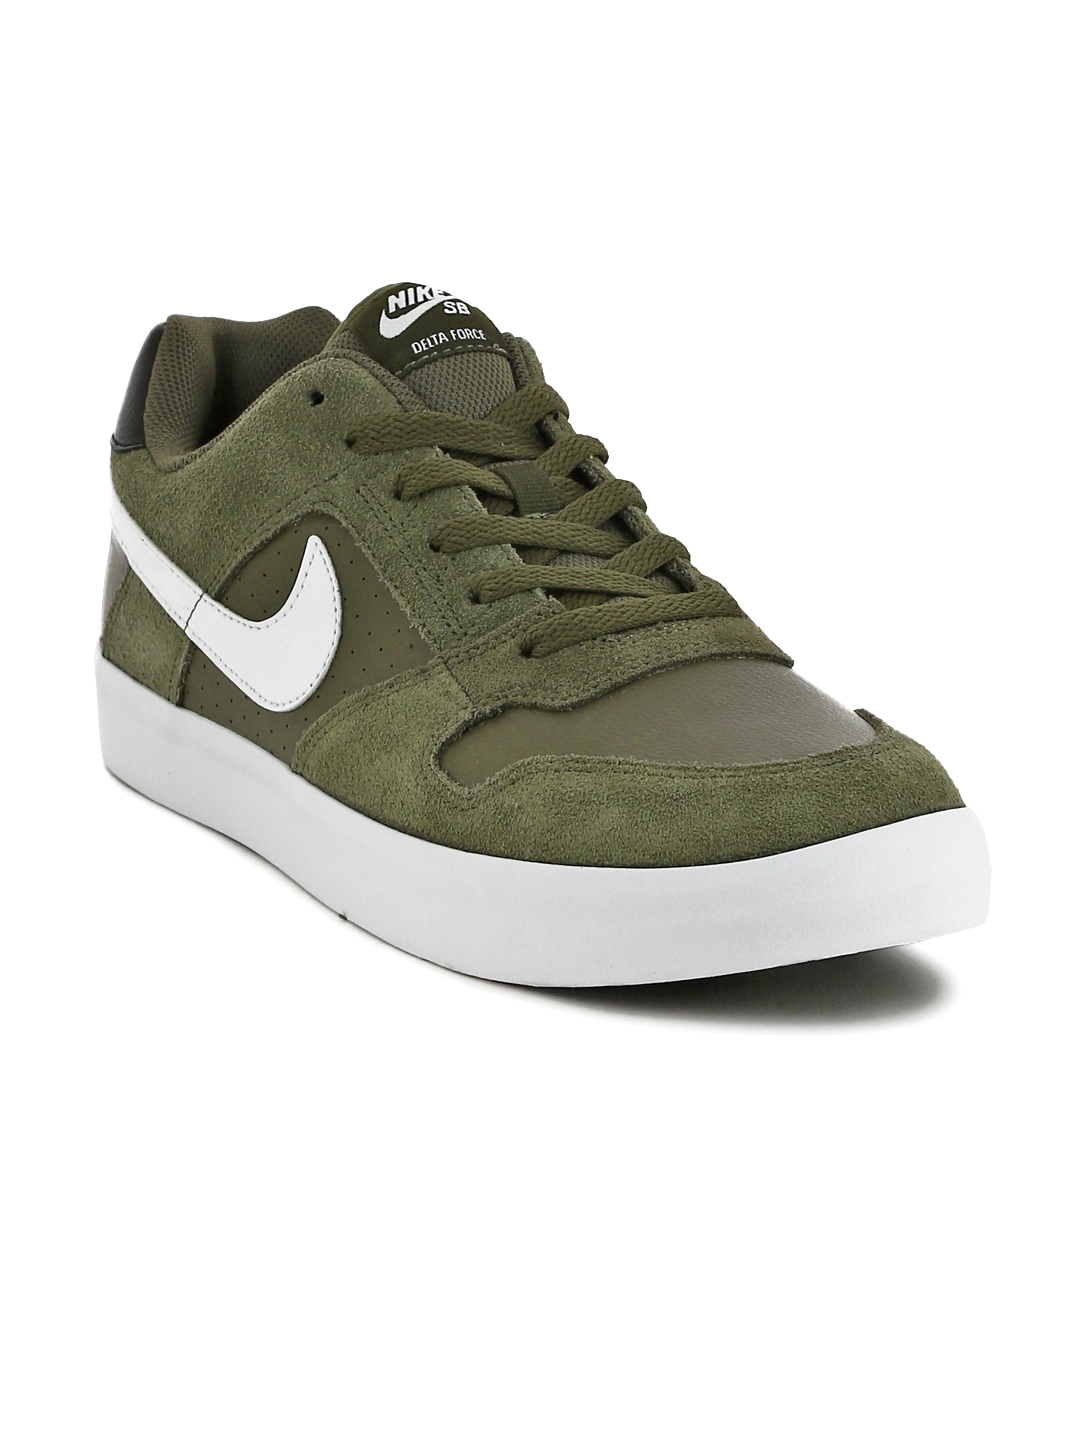 911acce68b4f Buy Nike Men Green SB Delta Force Skate Shoes - Casual Shoes for Men ...